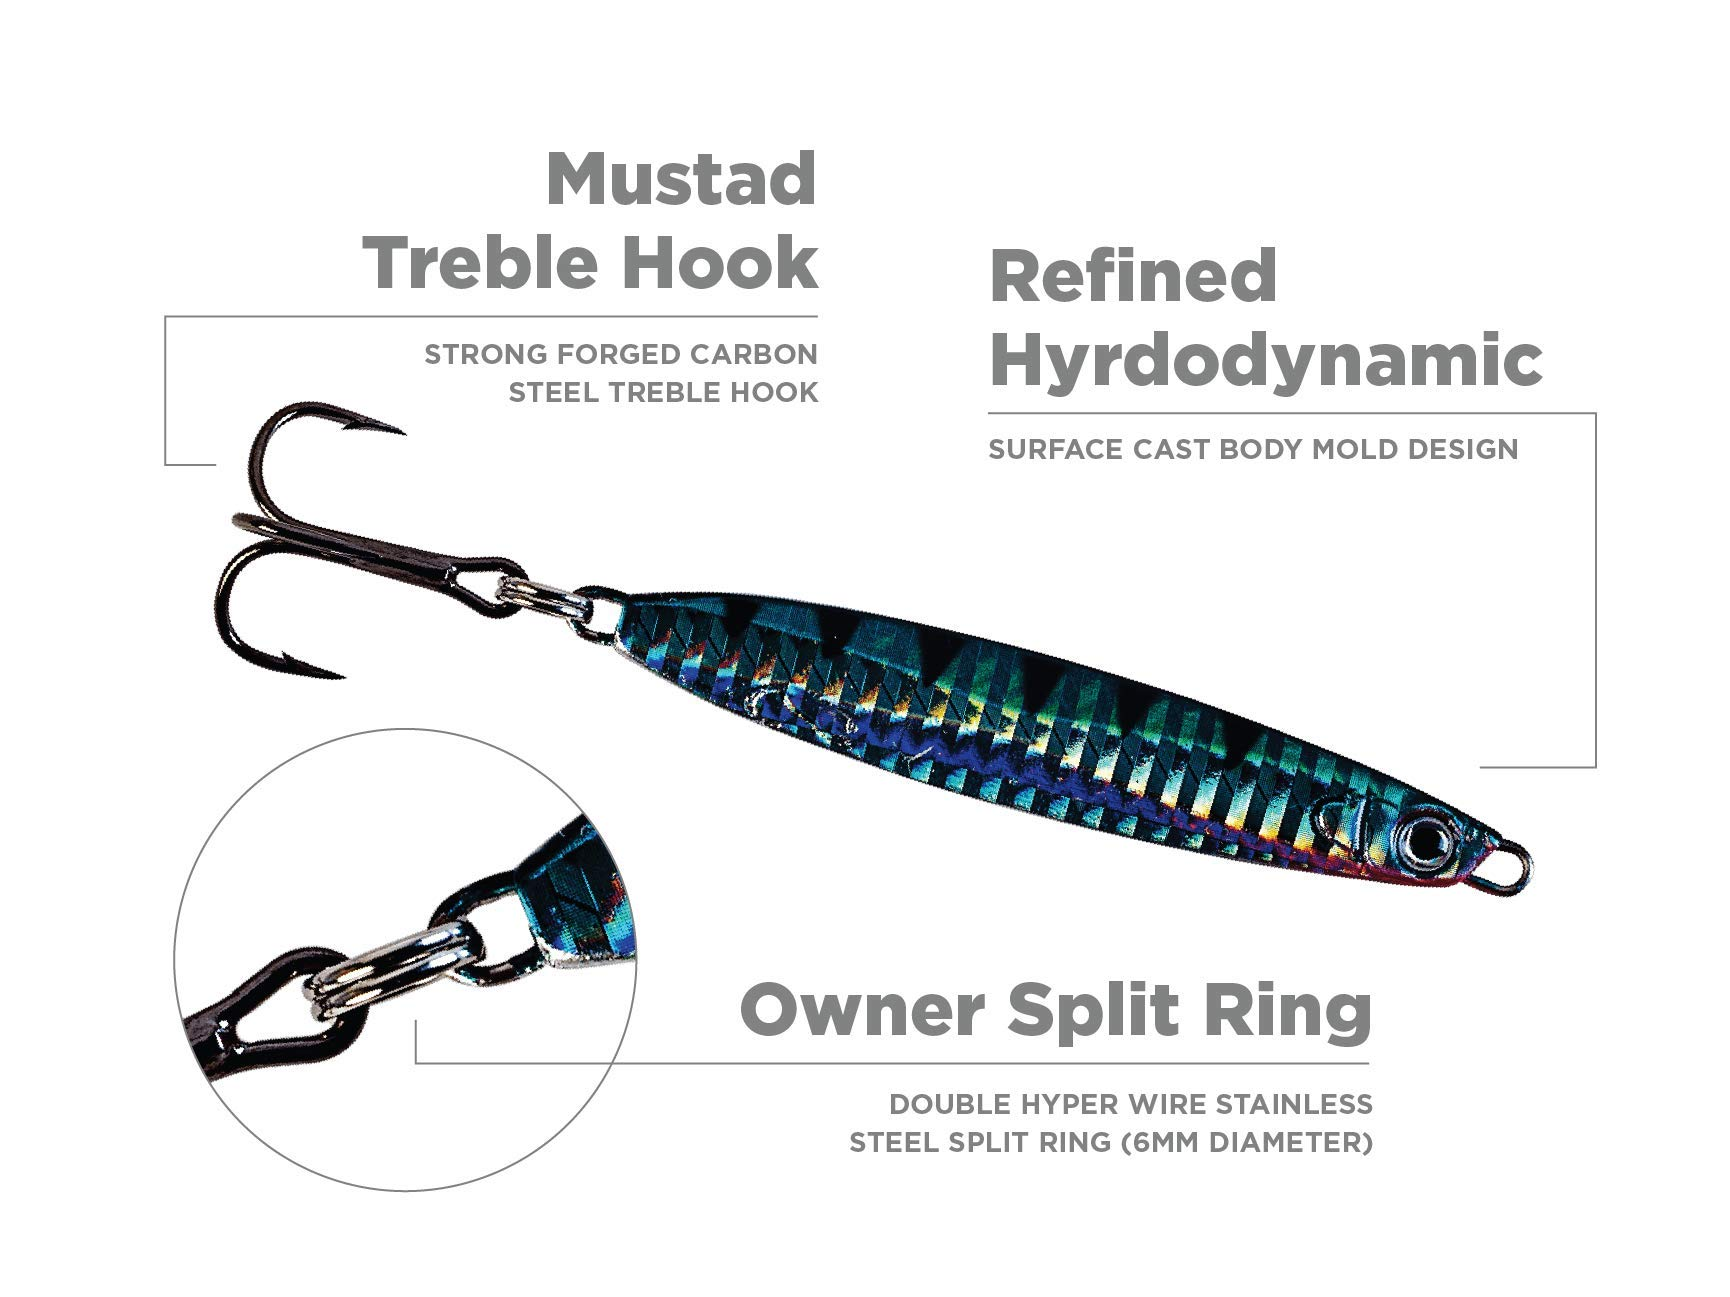 REELDICULOUS Surface Cast Crankbait Jerkbait Speed Irons Jigs w/MUSTAD Carbon Steel Hooks & Owner Rings | 9 Colors & 4 Weights | Pro Preferred Lures | Top Water Hydro-Dynamic & Color Re-Design by REELDICULOUS